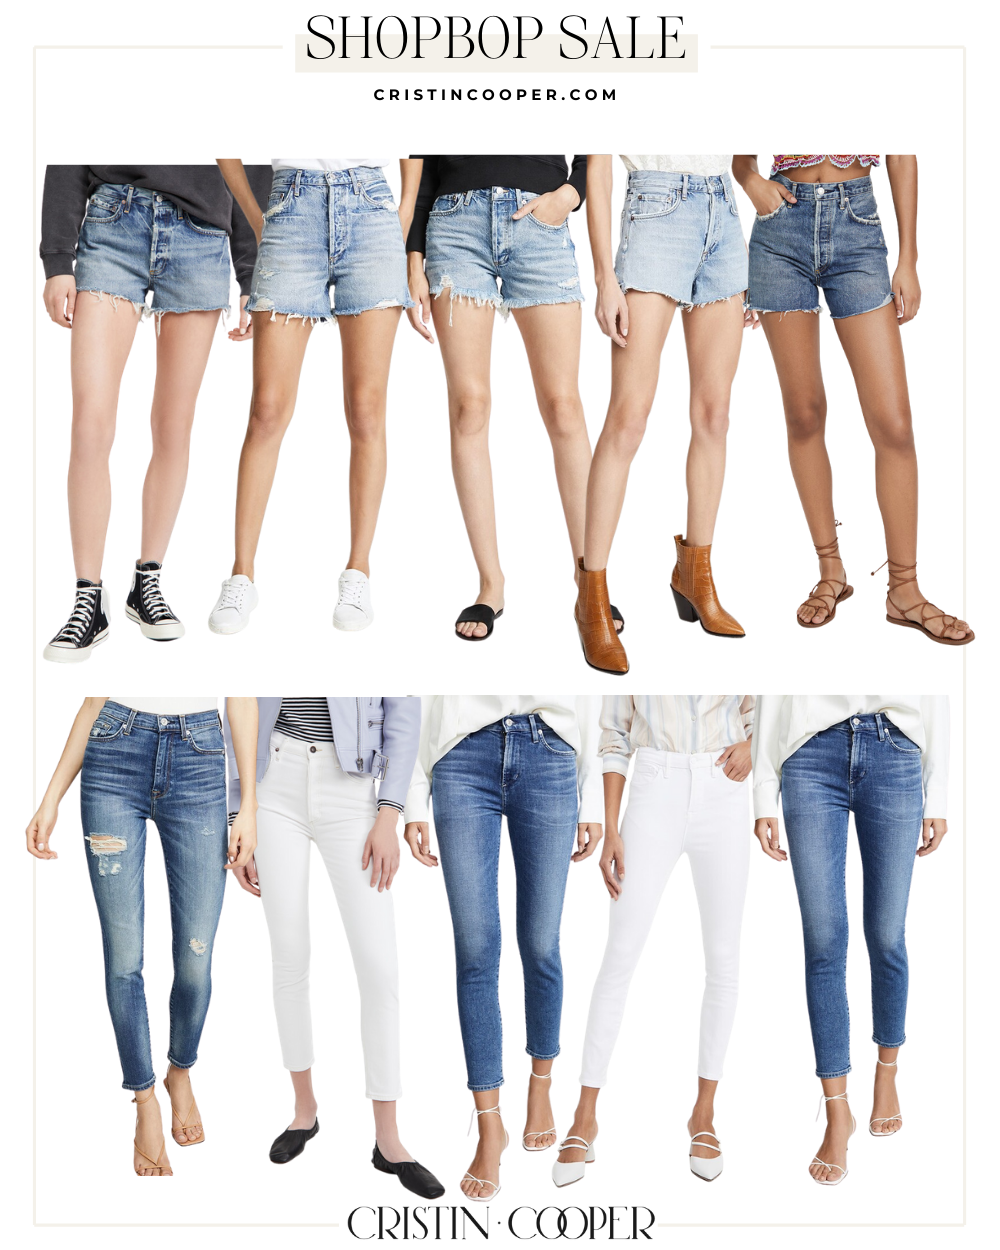 Demin shorts and jeans on sale at Shopbop